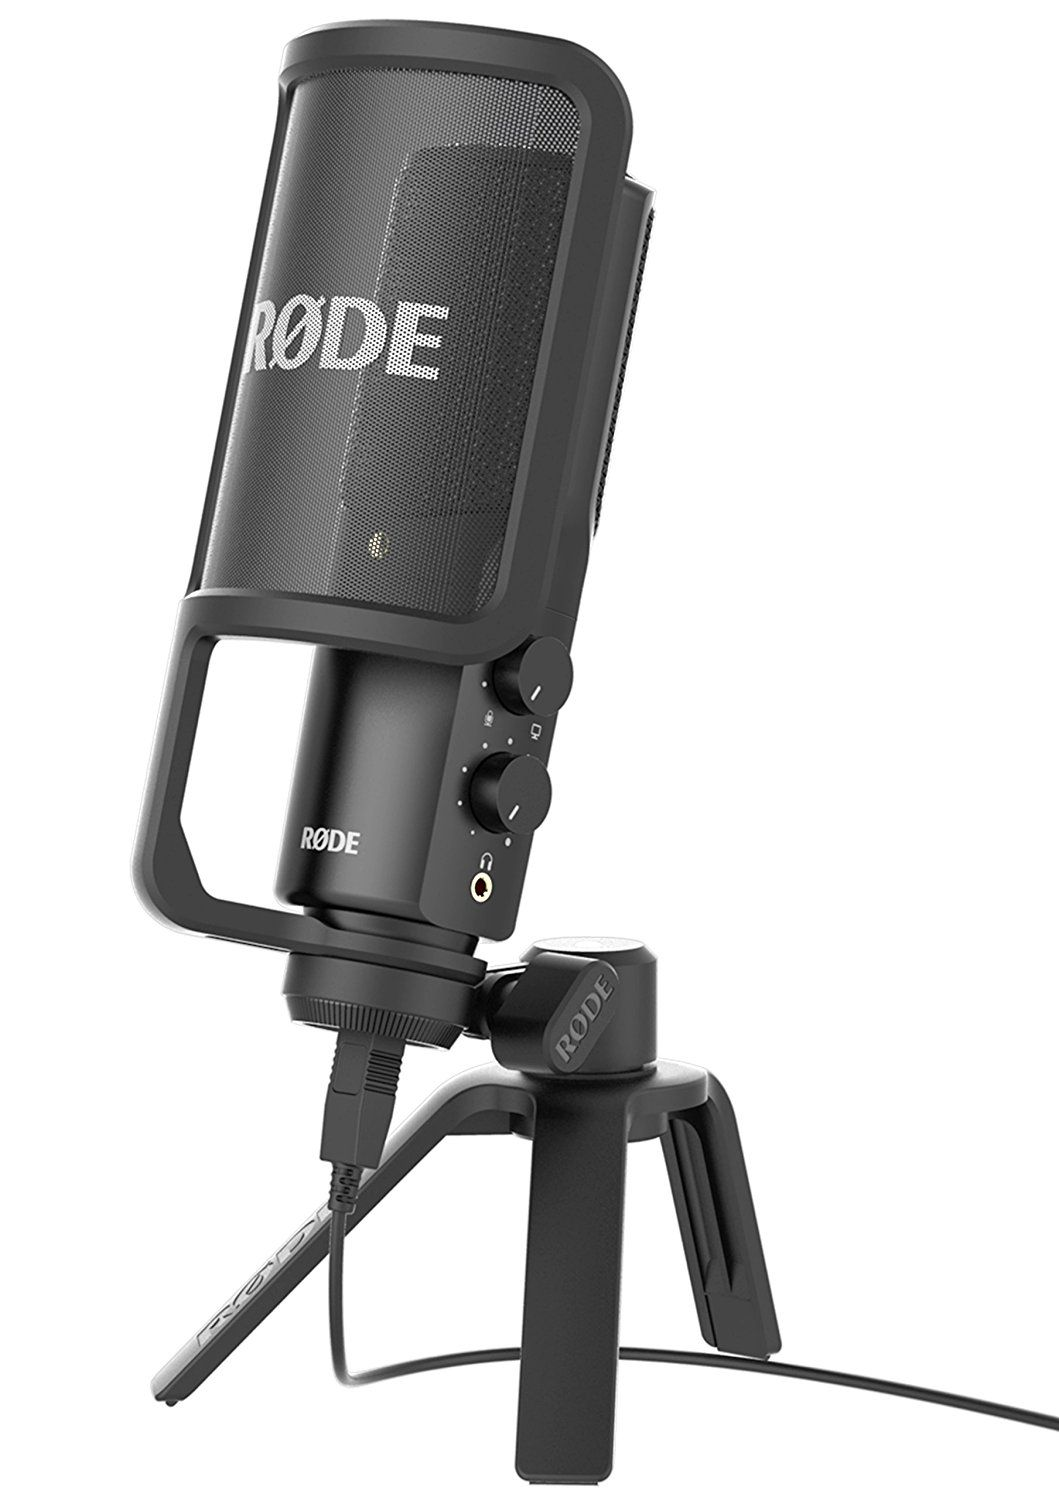 Rode Nt Usb Condenser Microphone High Quality Studio Ultra Low Noise With The Convenience Of Connectivity On Mic Mix Control Includes